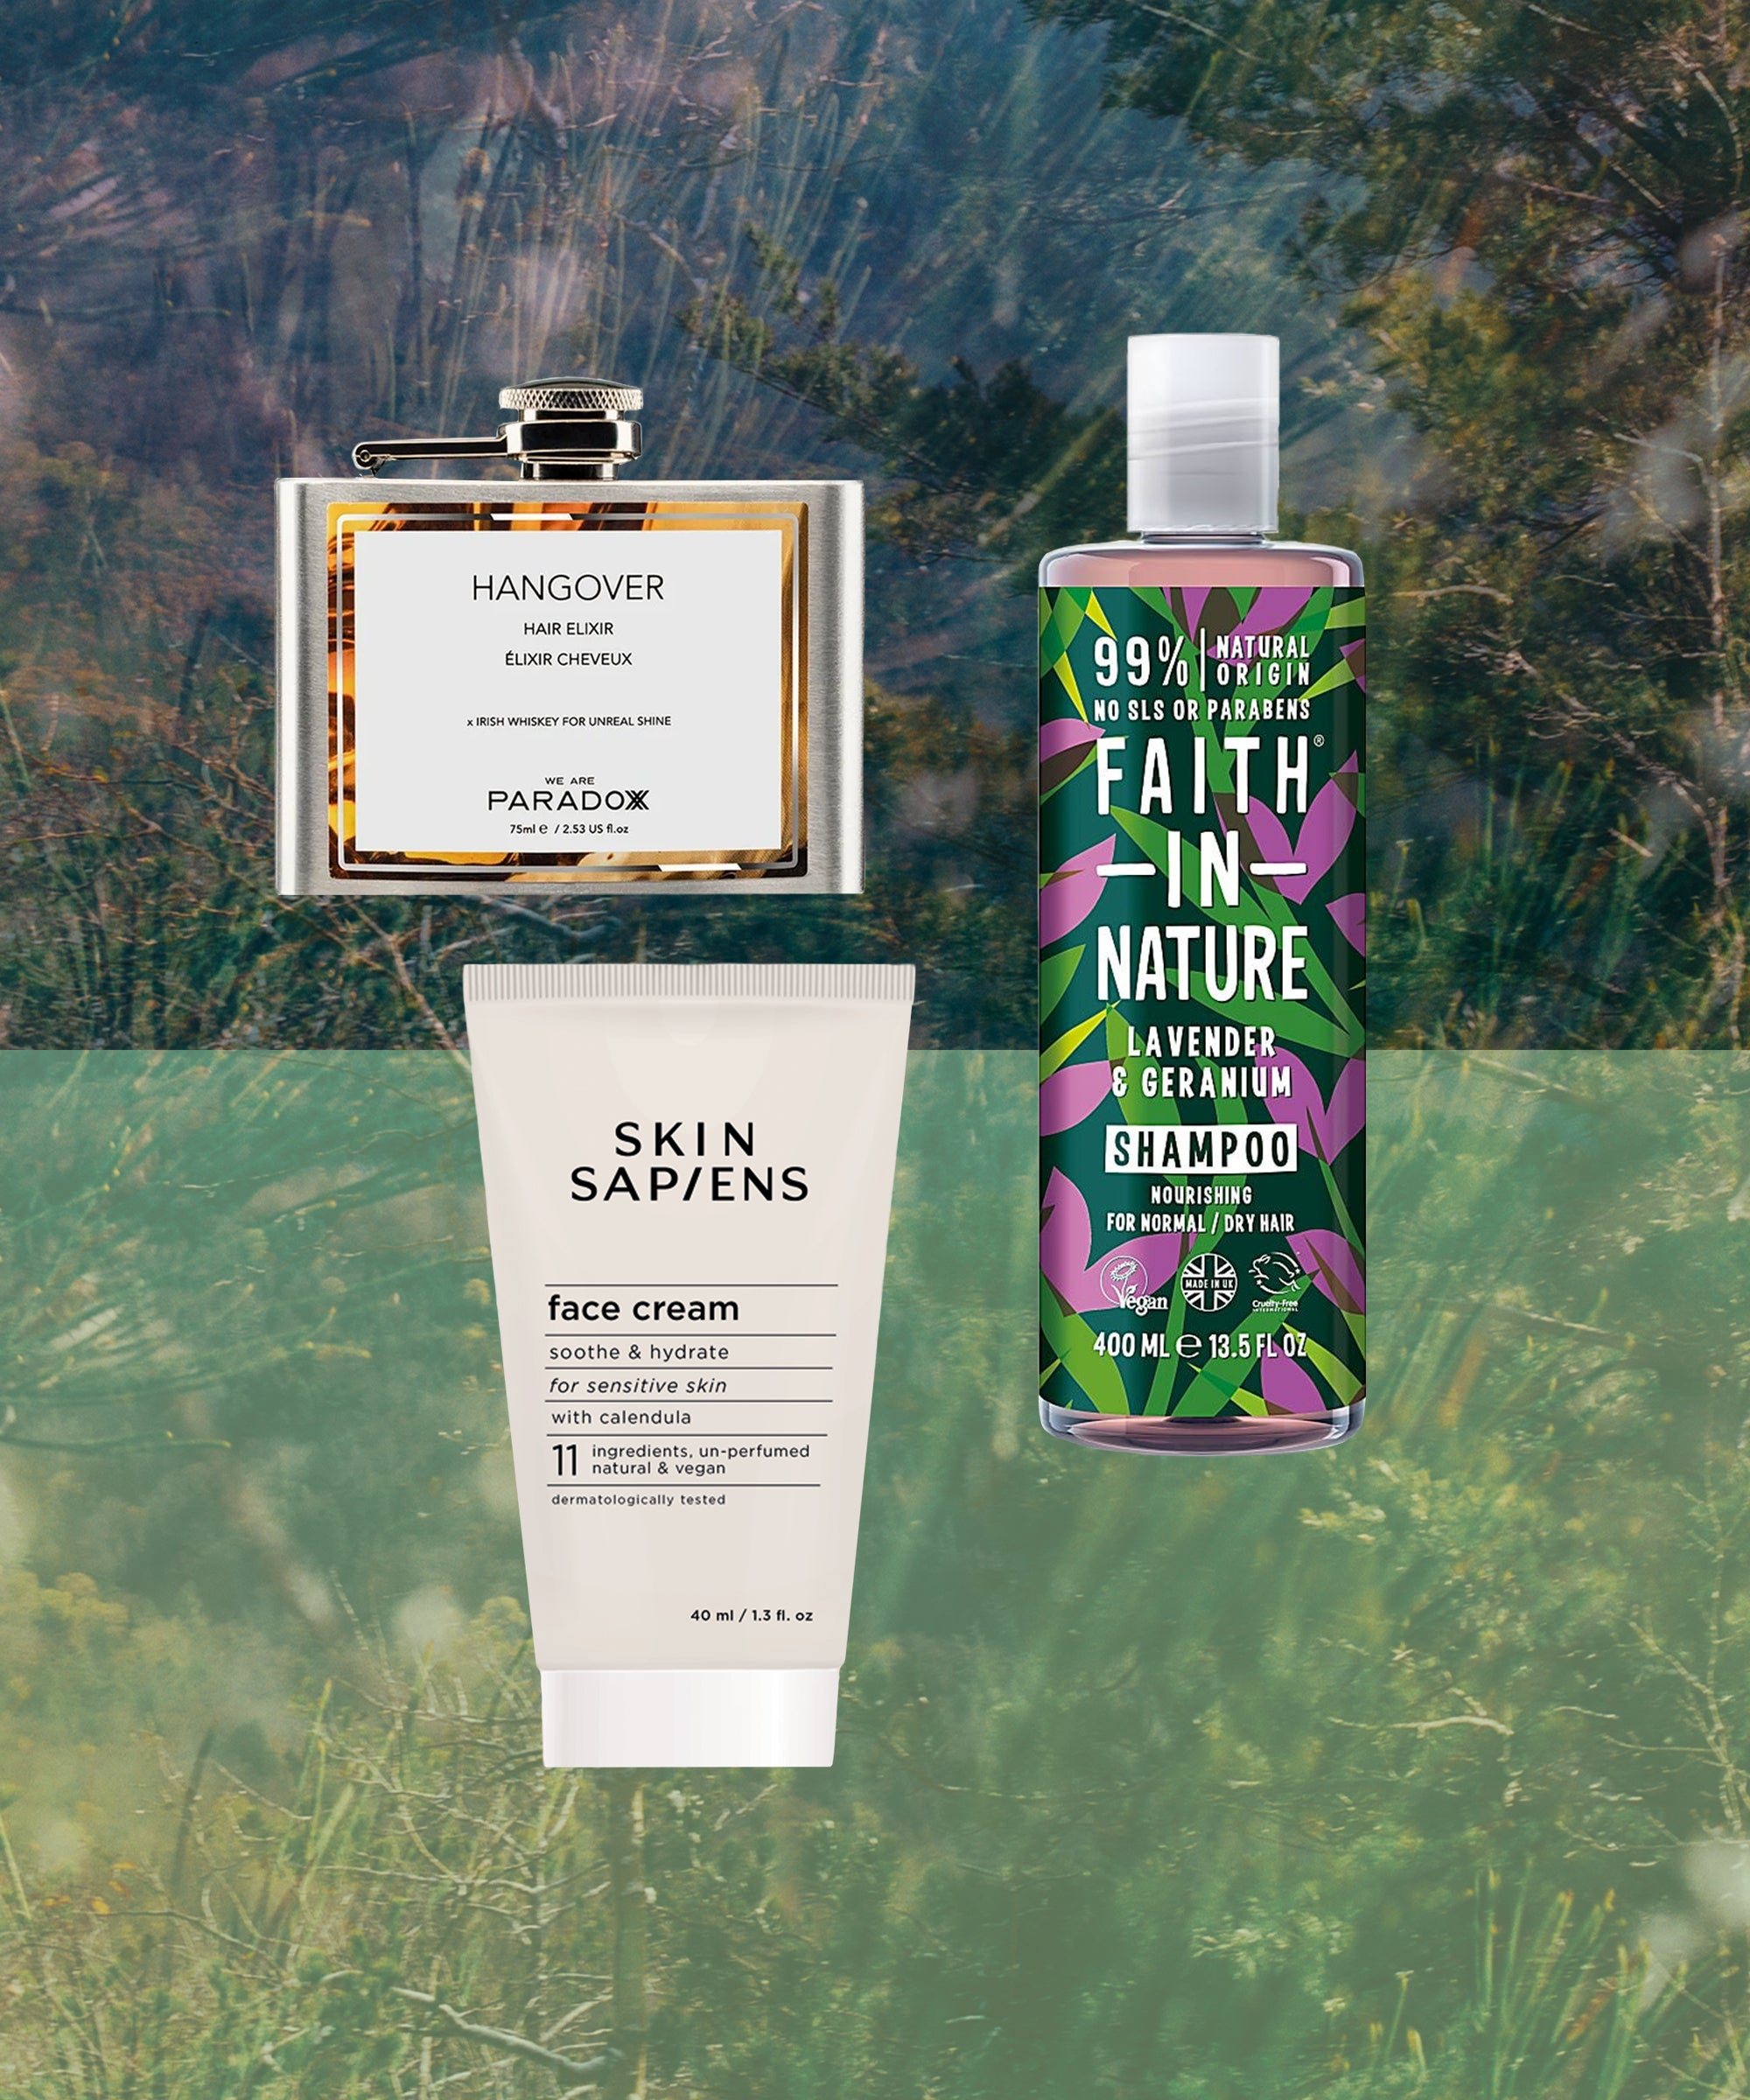 7 Of The Best Sustainable, Vegan & Eco-Friendly Beauty Brands